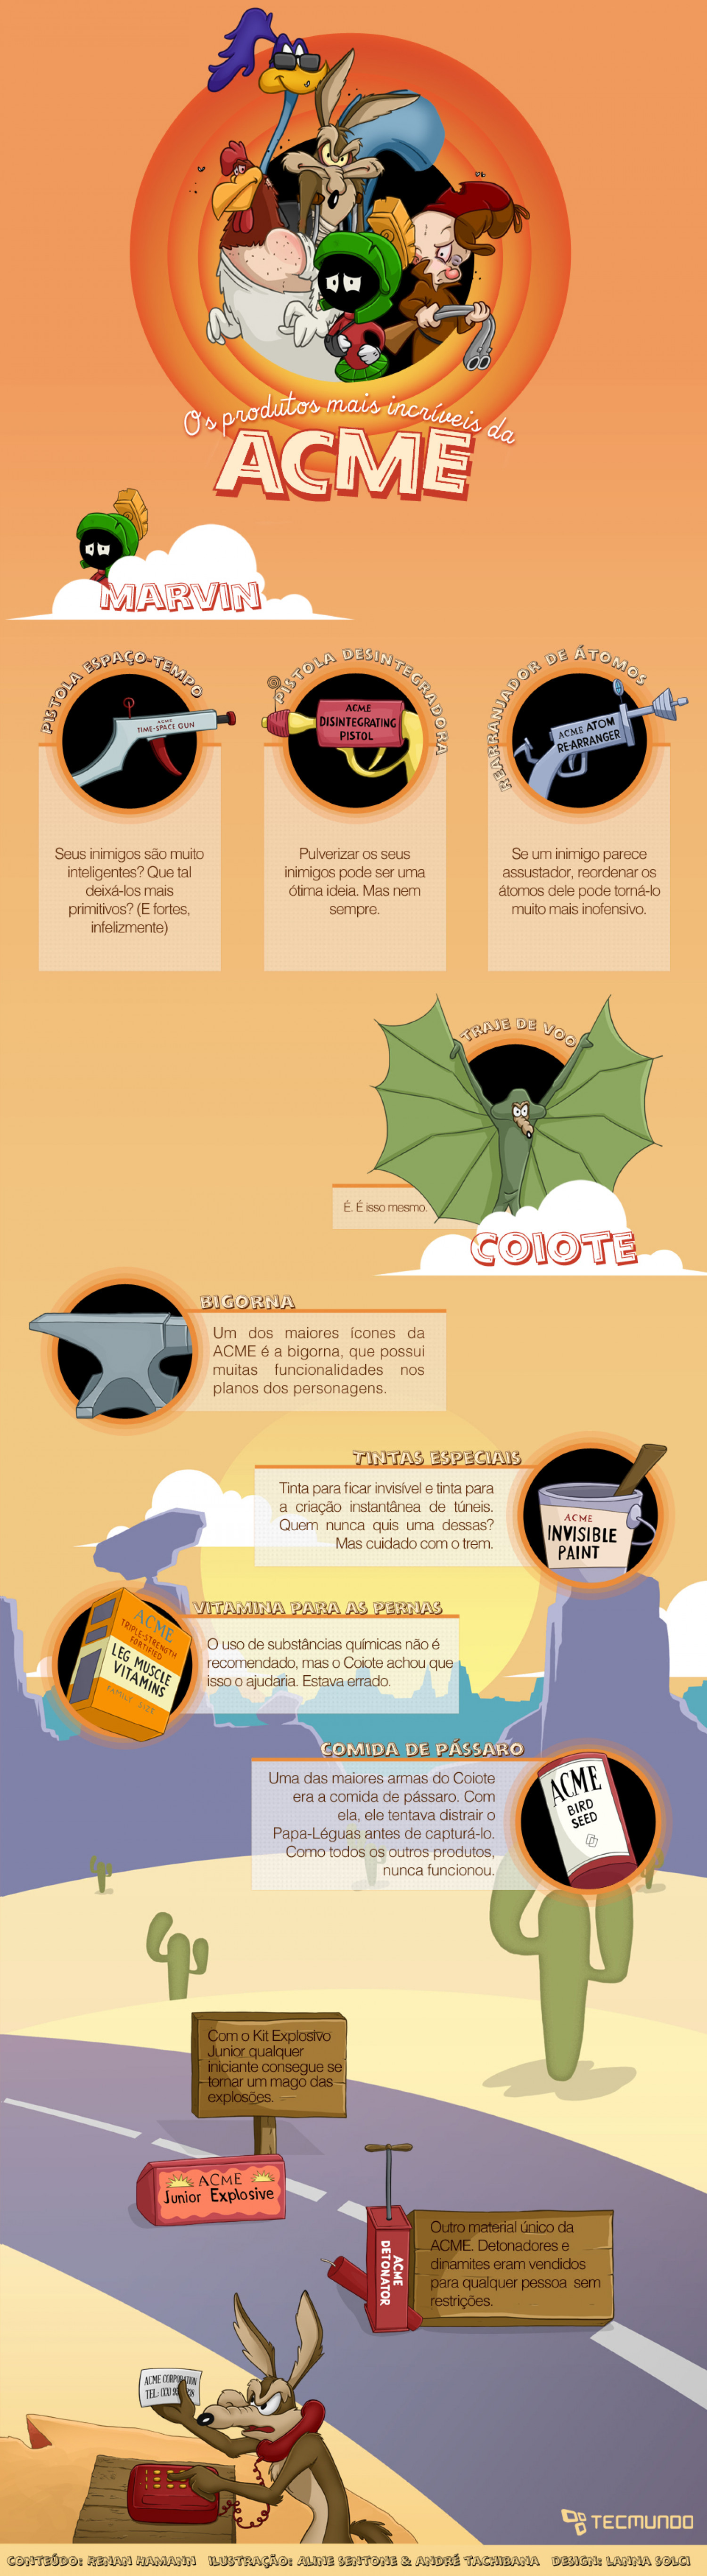 The amazing tools from ACME Infographic